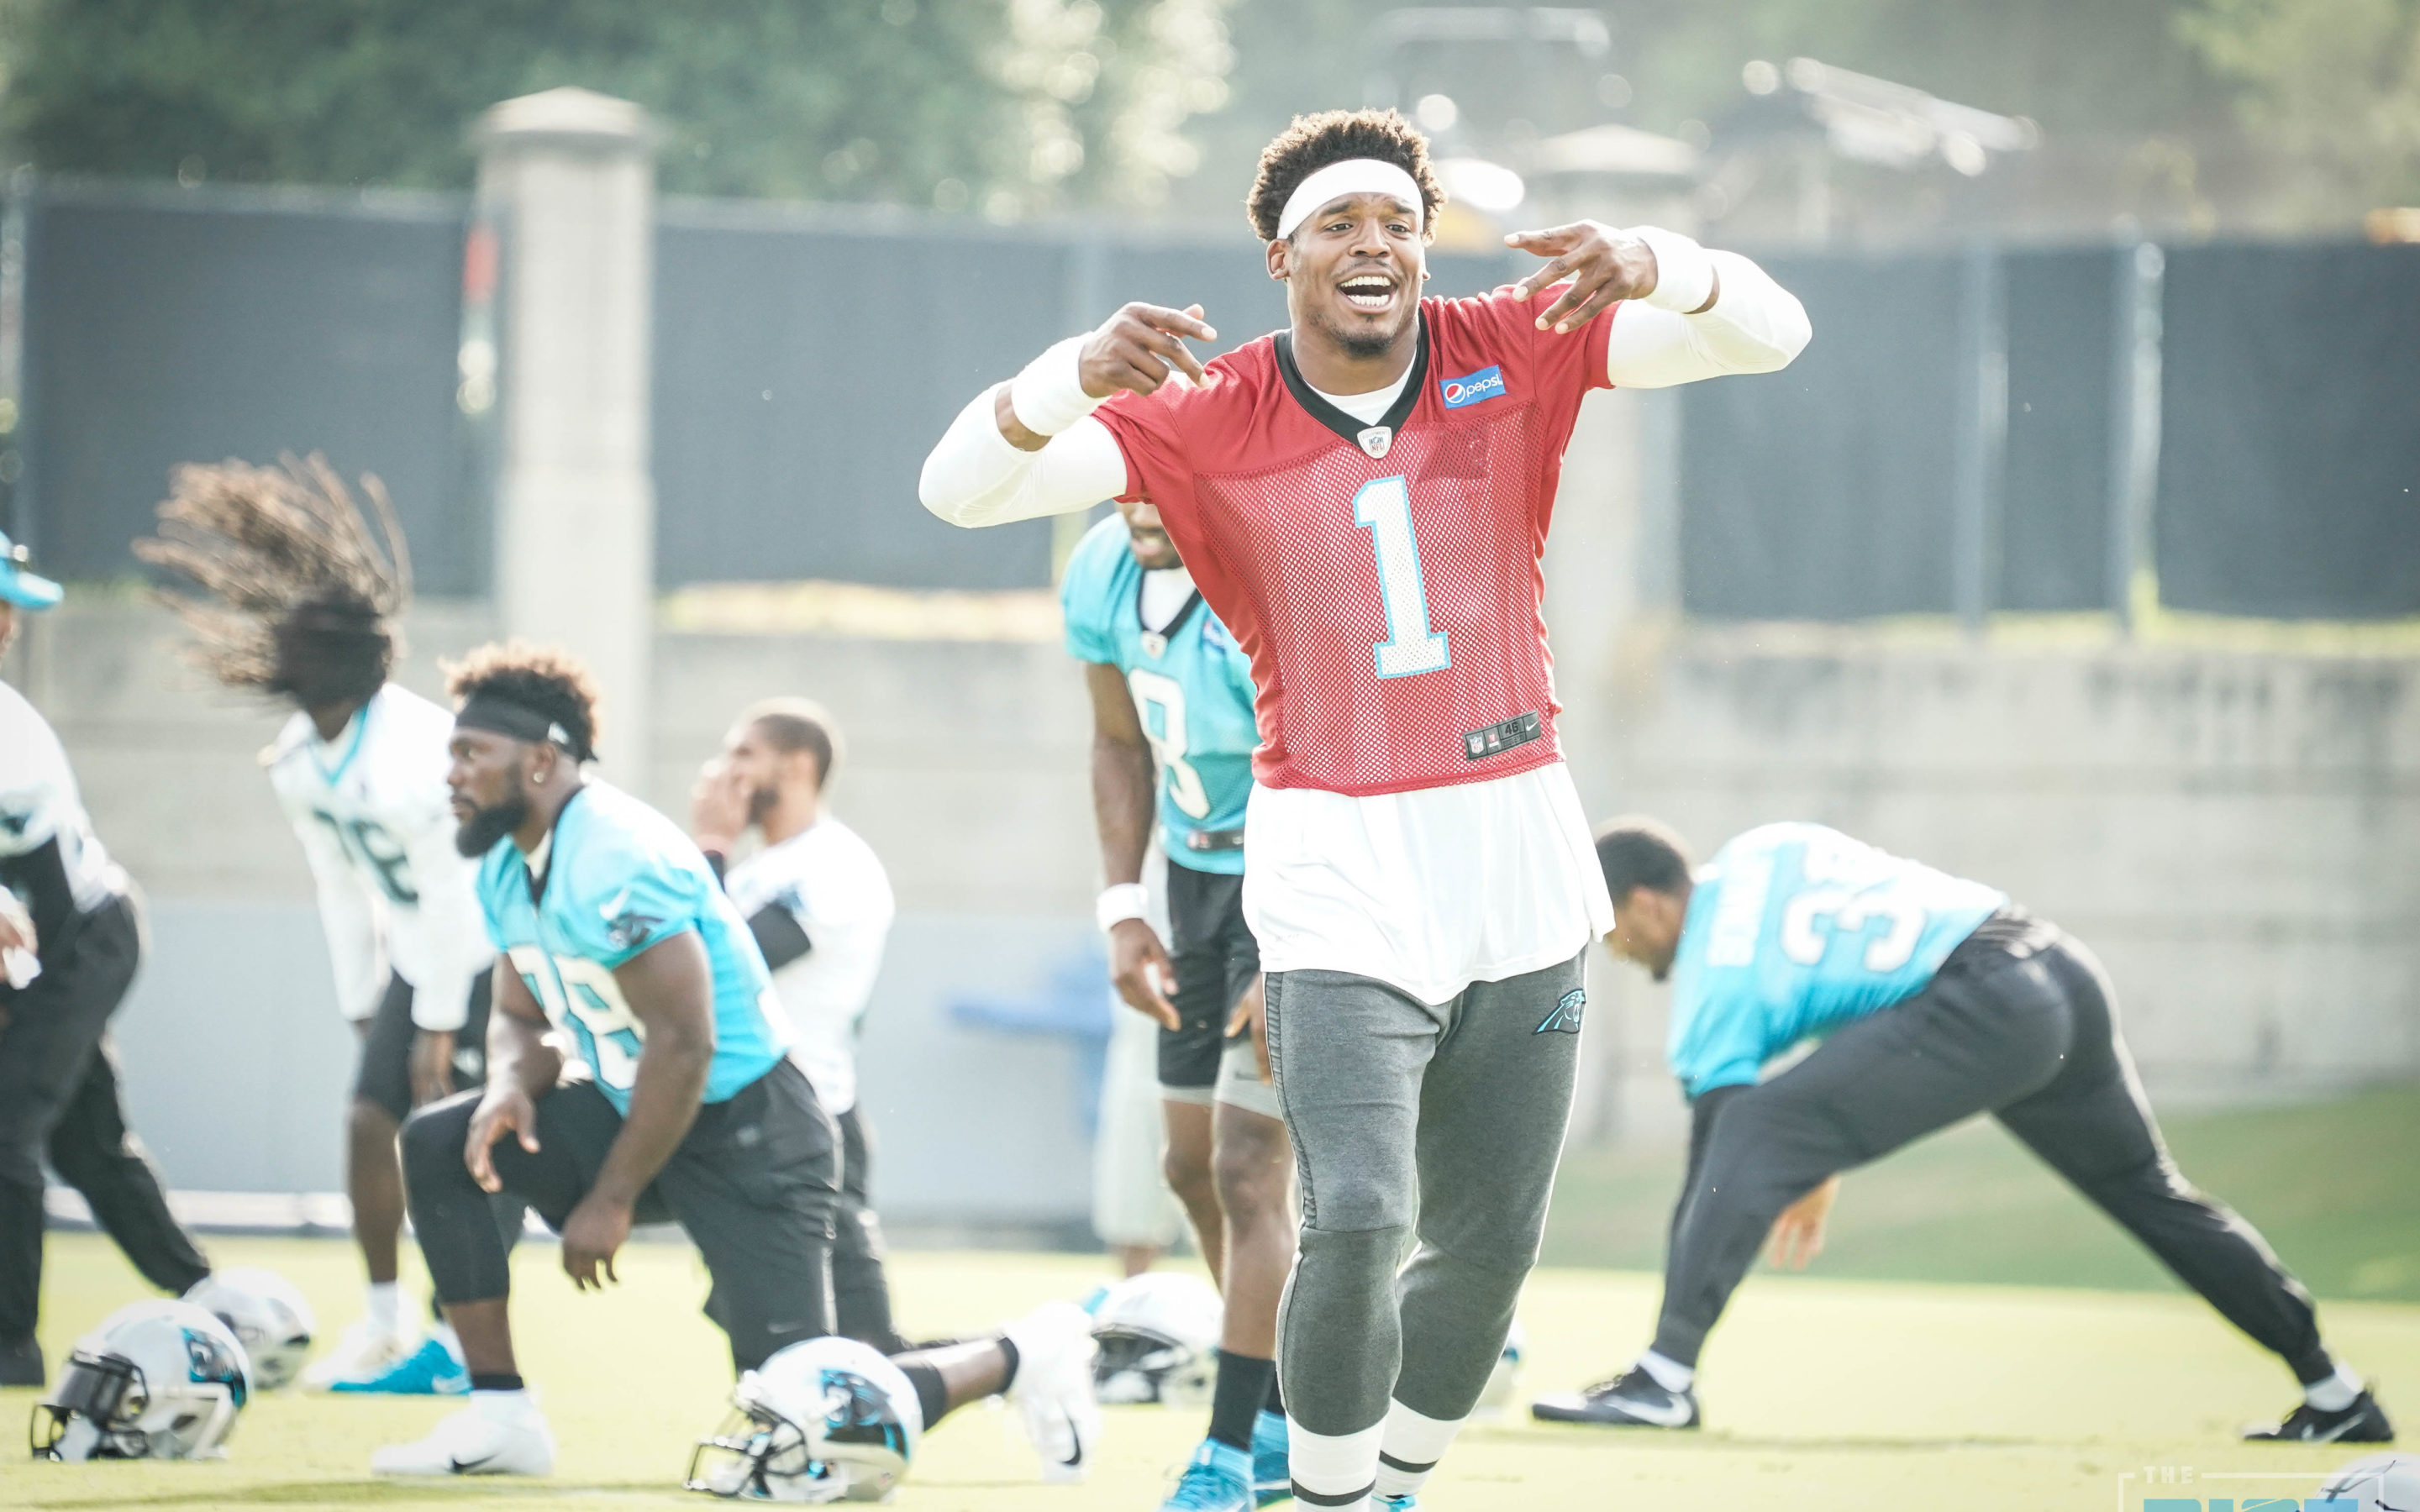 228cbe146a6 Panthers Mini-Camp Day 3 Quick Hits | The Riot Report